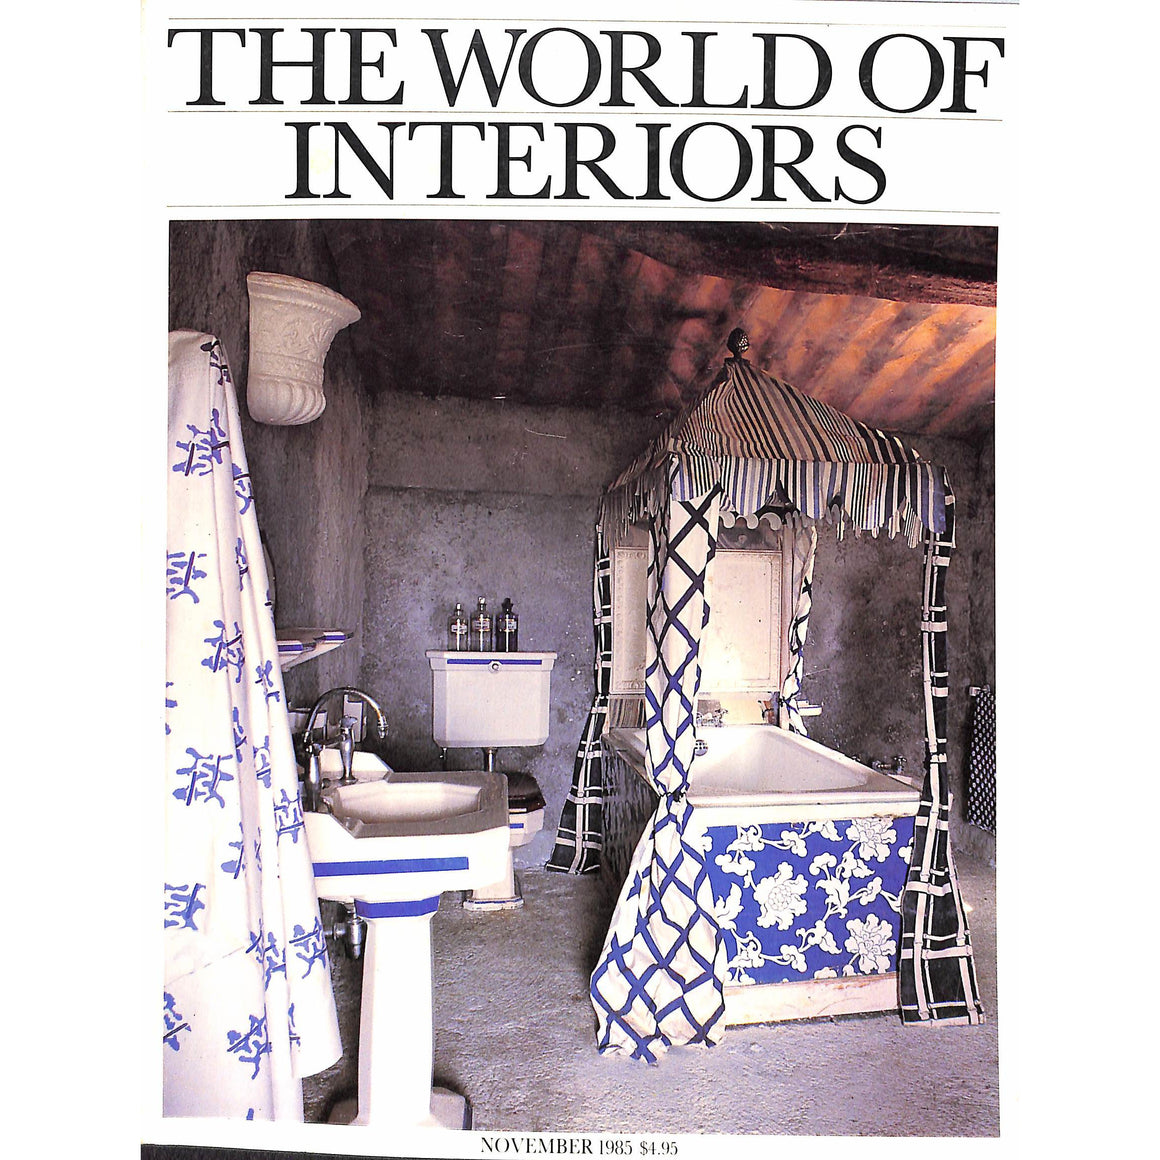 The World of Interiors November 1985